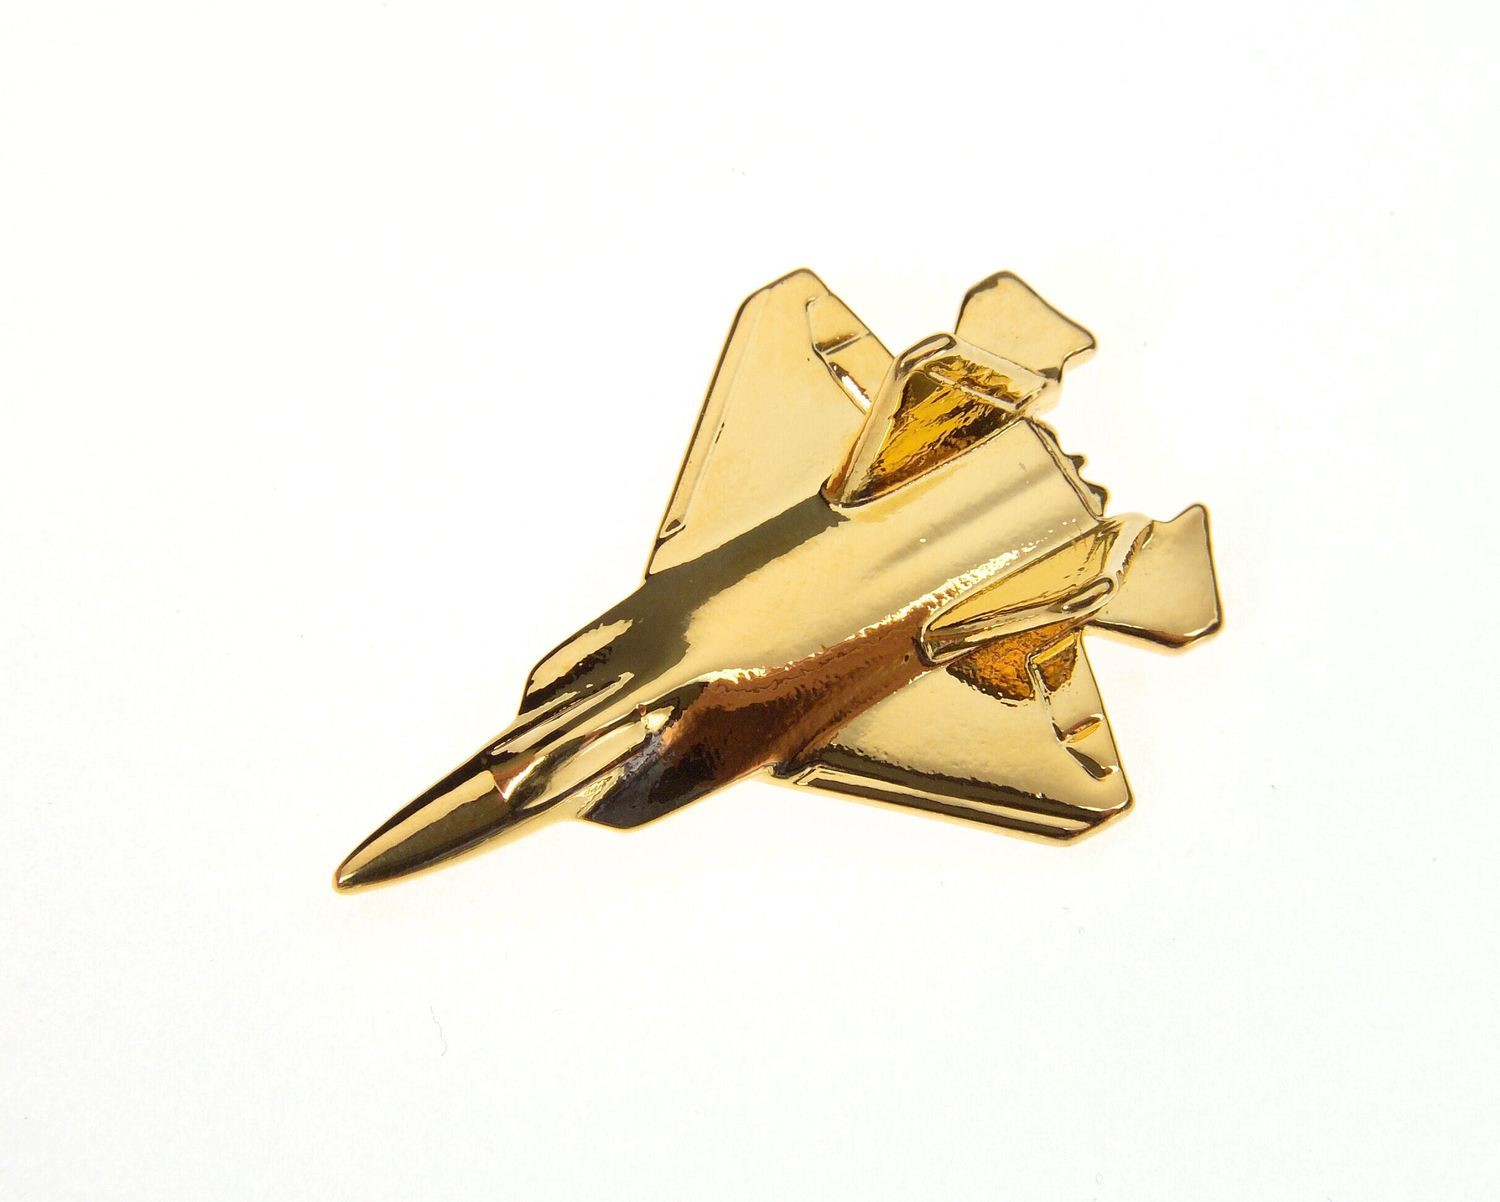 F22 Raptor Gold Plated Tie / Lapel Pin